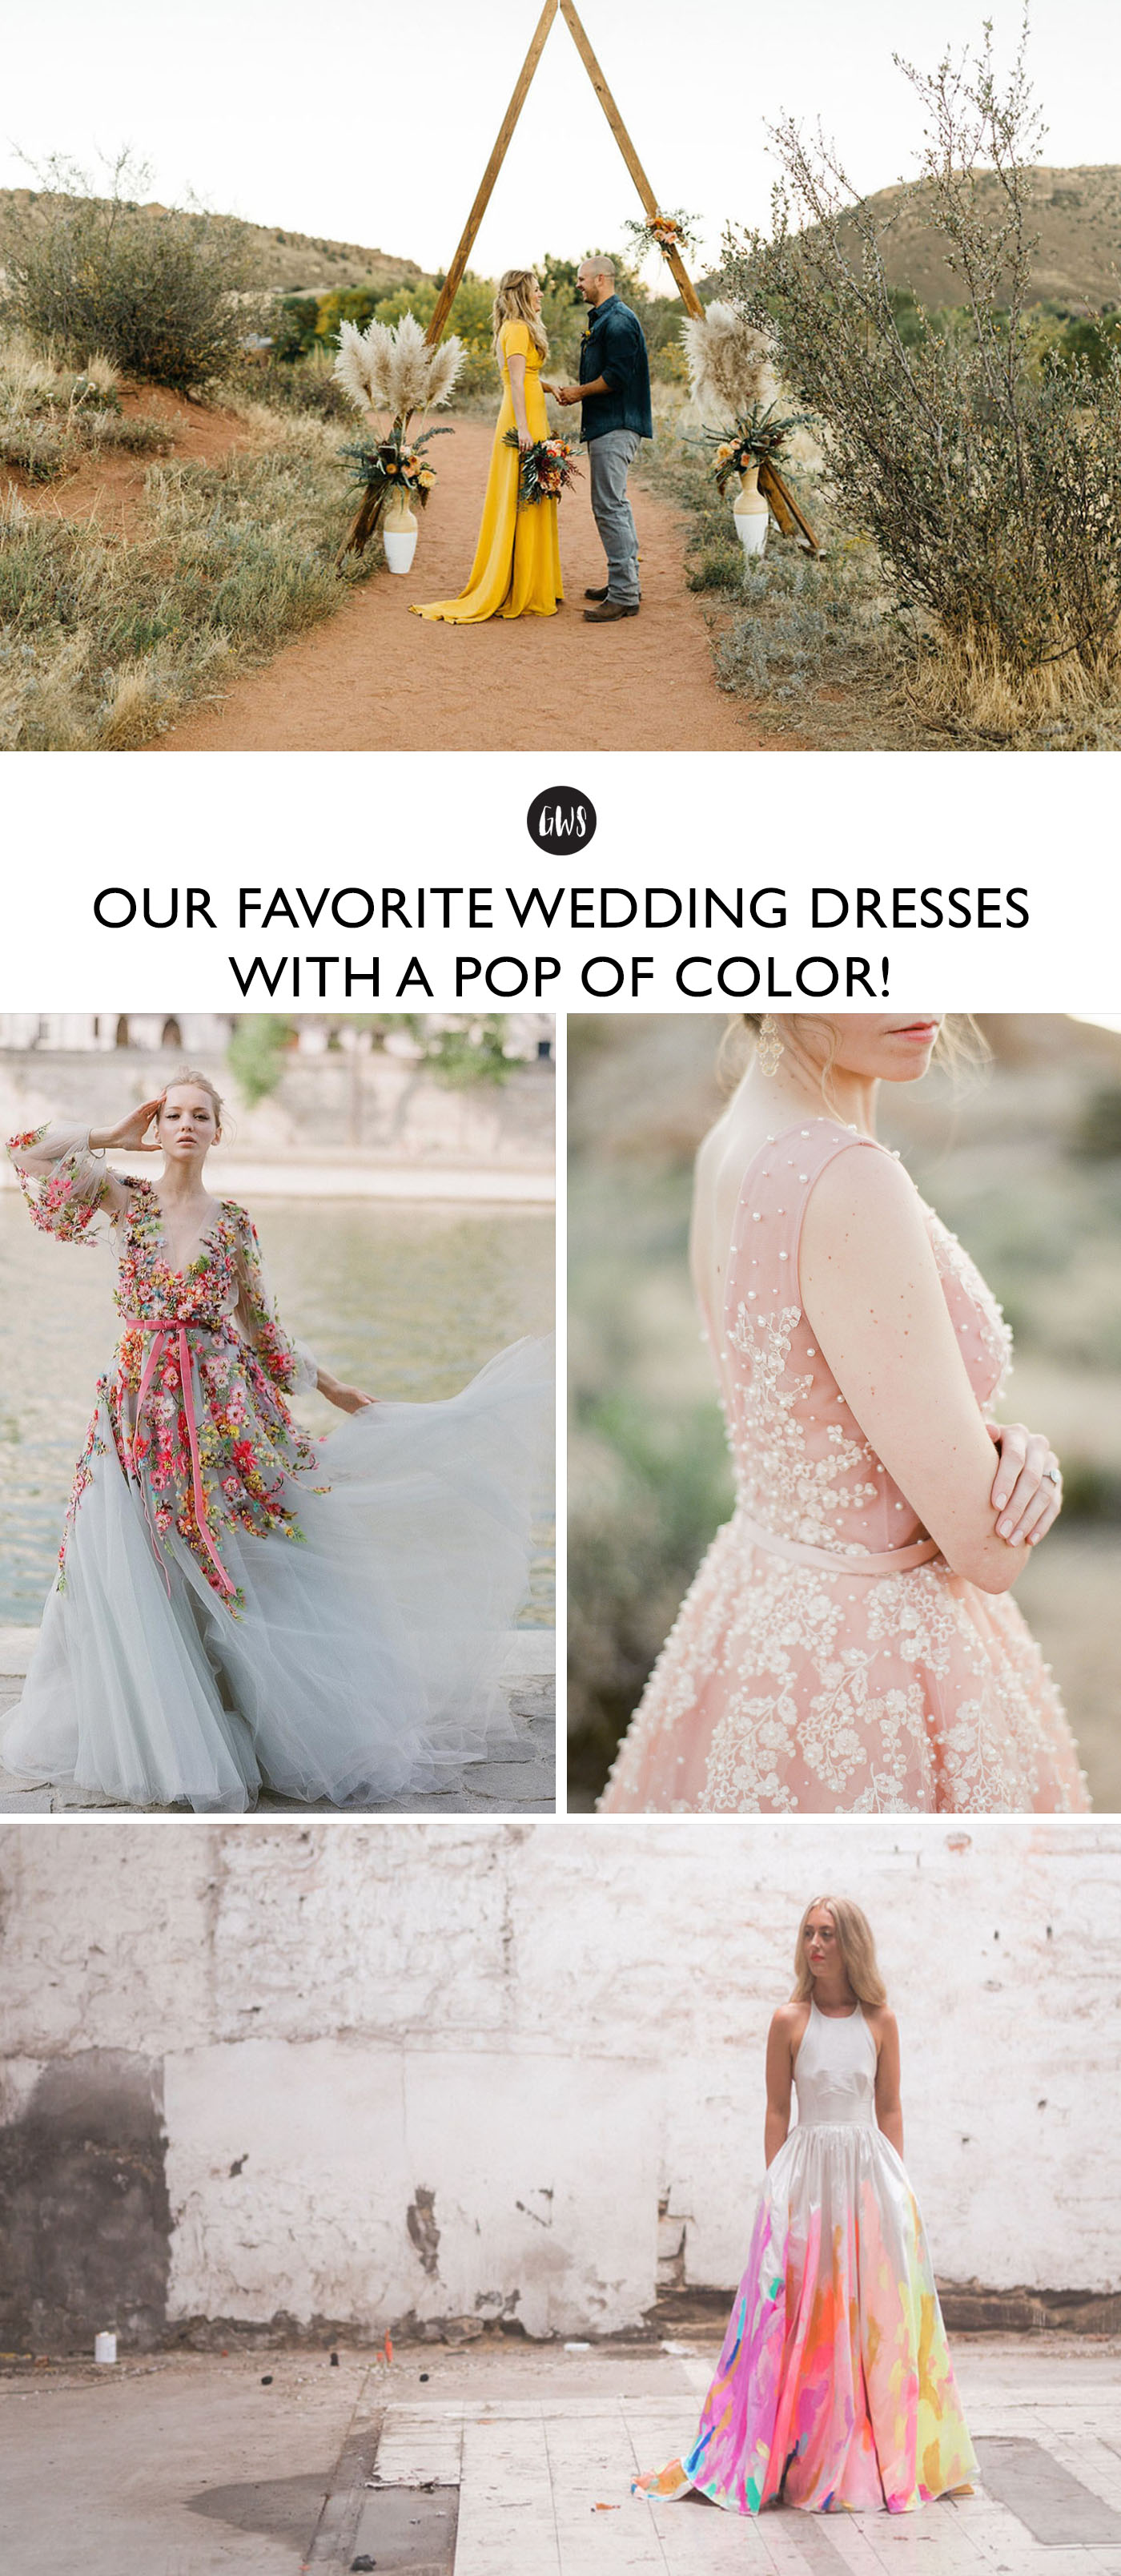 Pop Wedding Dress.Our Favorite Wedding Dresses With A Pop Of Color Green Wedding Shoes